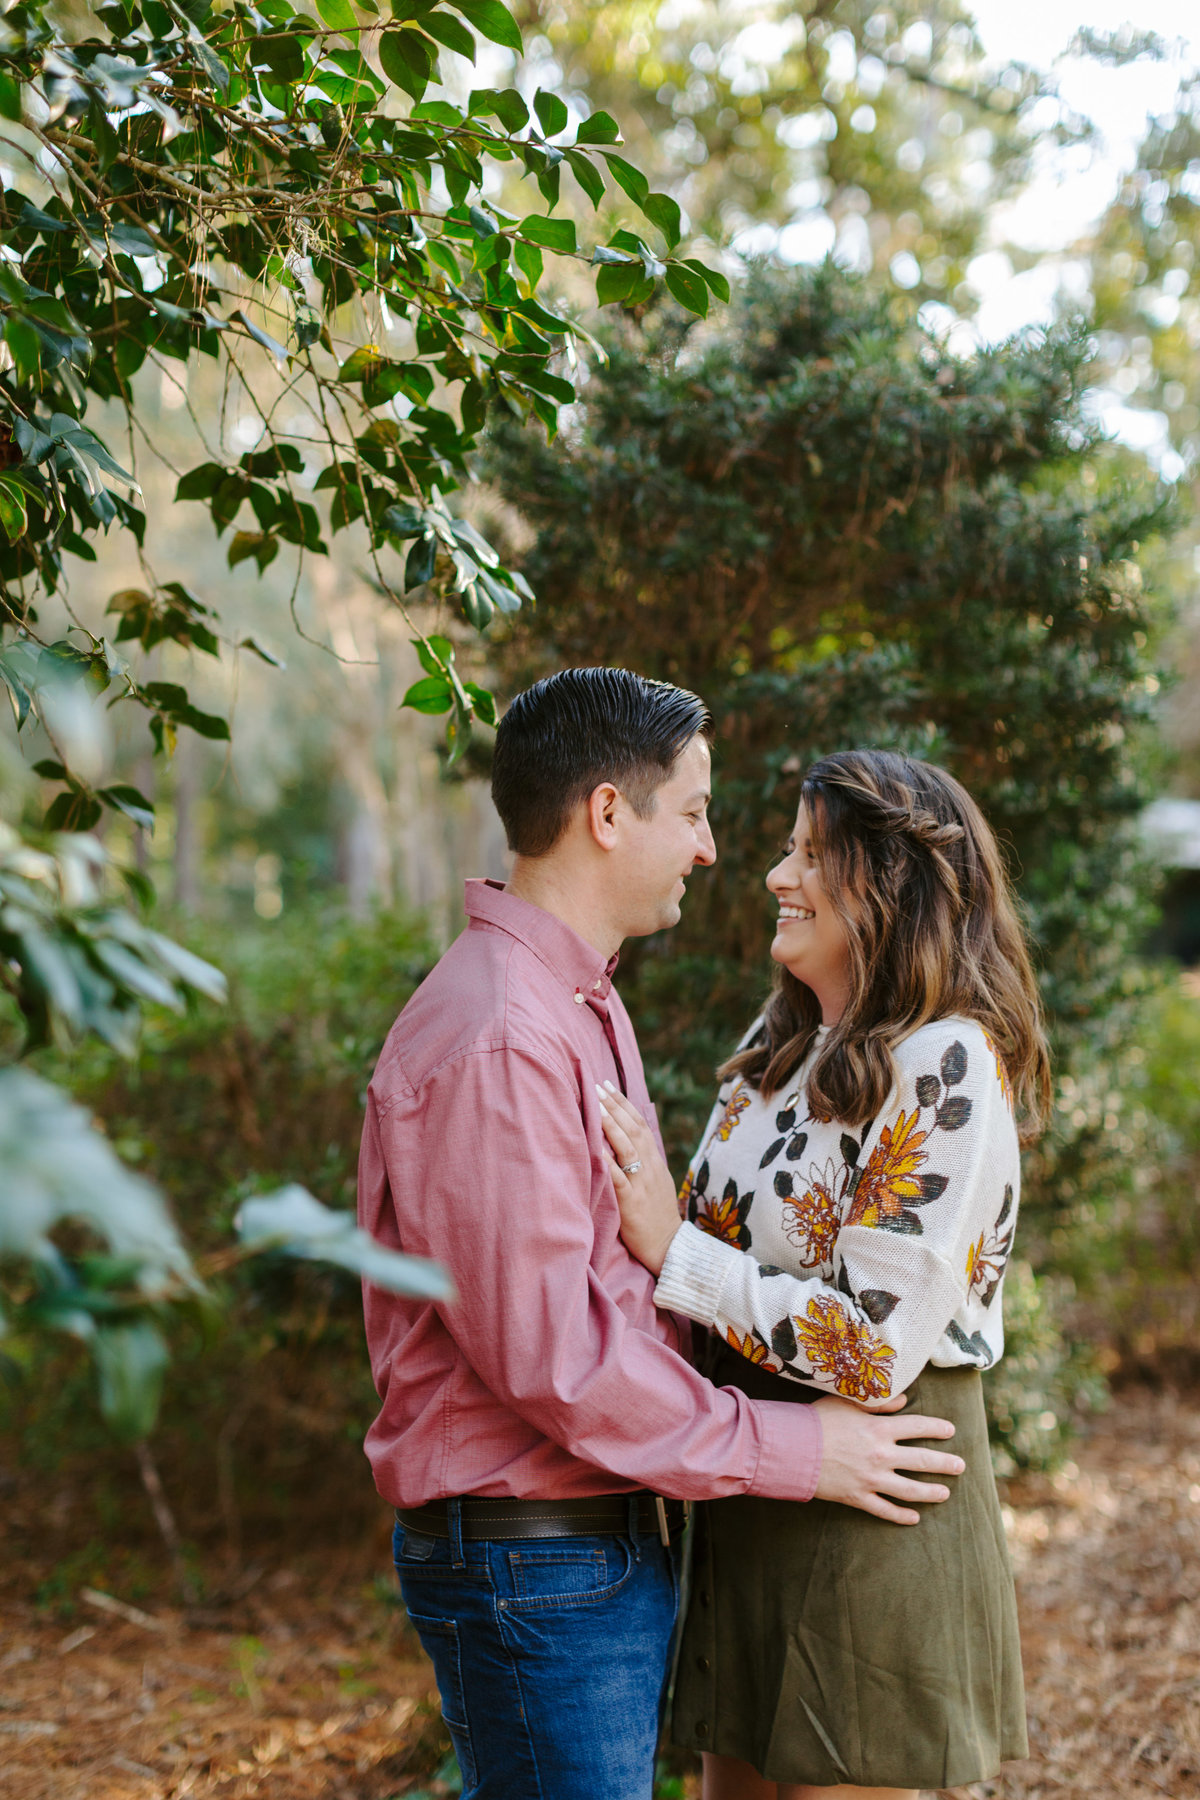 eden-gardens-state-park-engagement-session-jessica-and-logan-3-2